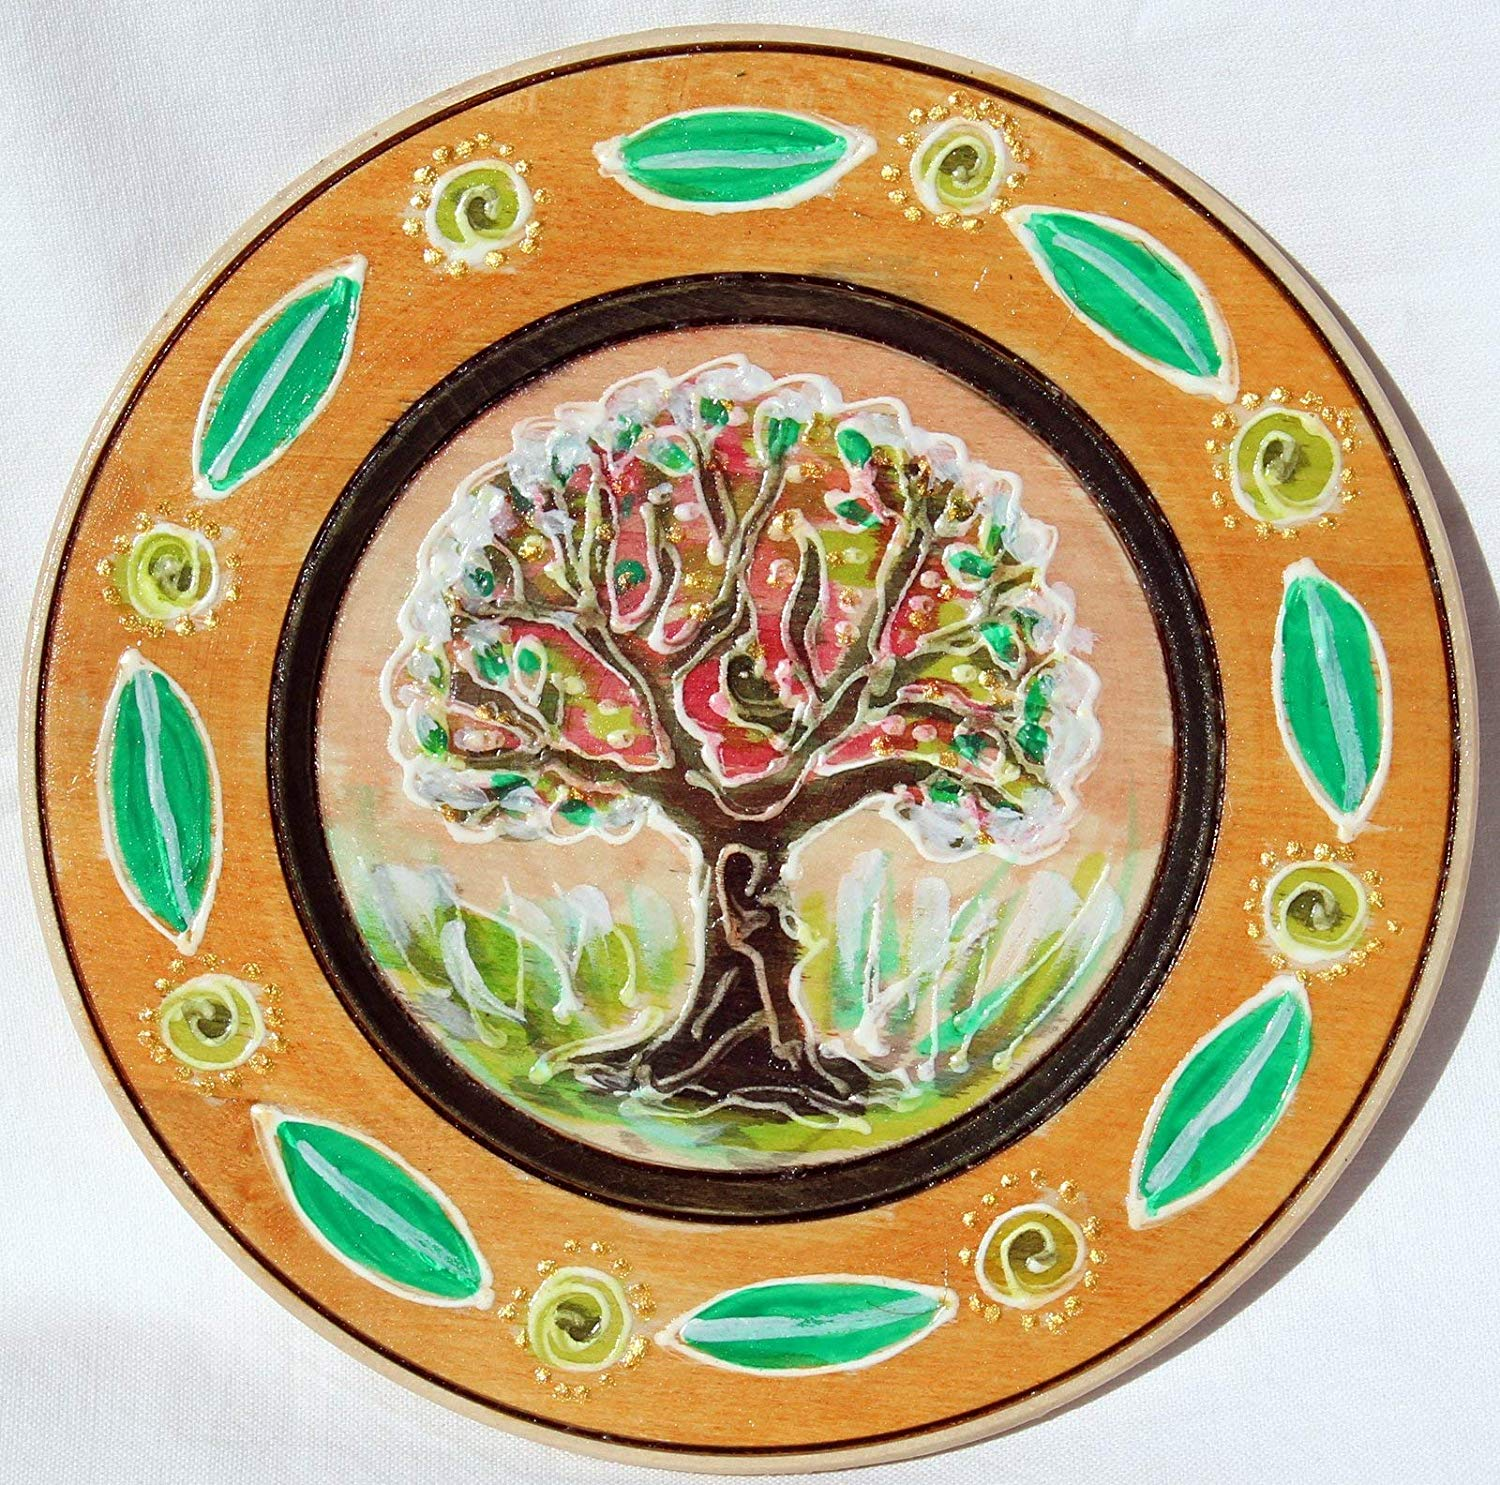 Sale!!!10% Off,Tree of Desires,Christmax gift Mom,Hand Painted Tree on Wooden Plates,Custom Tree Plates,Tree of Life Wooden,Painted Collectible,Plate Decorative,Plate Painted,Wall Plate.